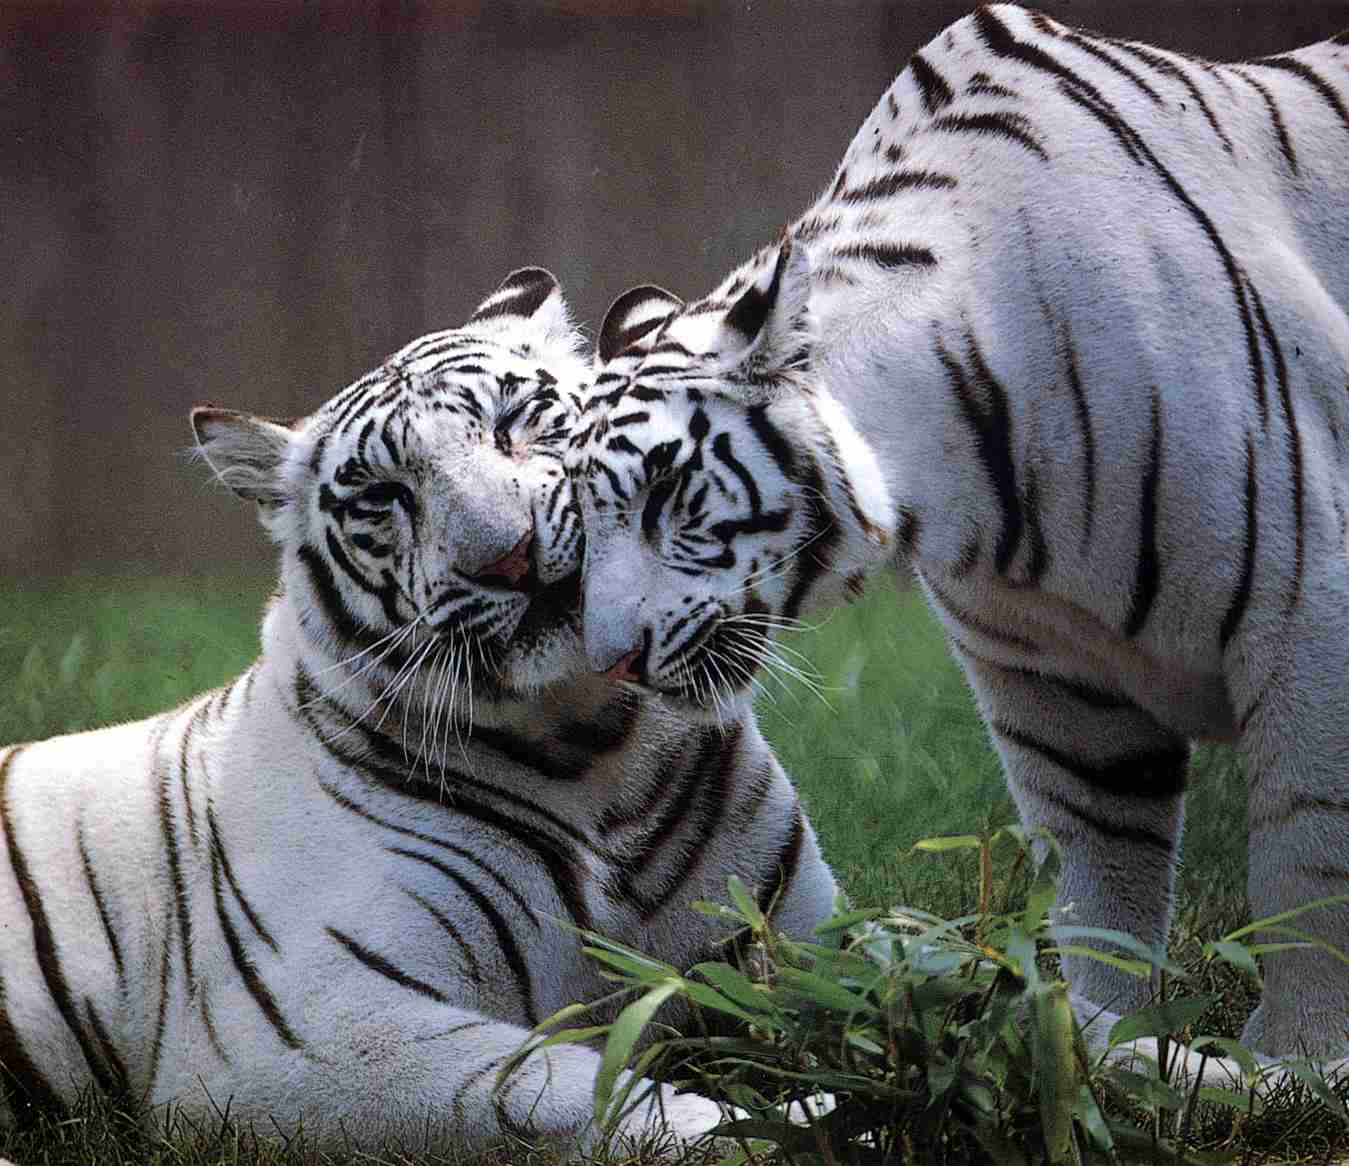 All About White Tigers - Detailed History of the White Tiger